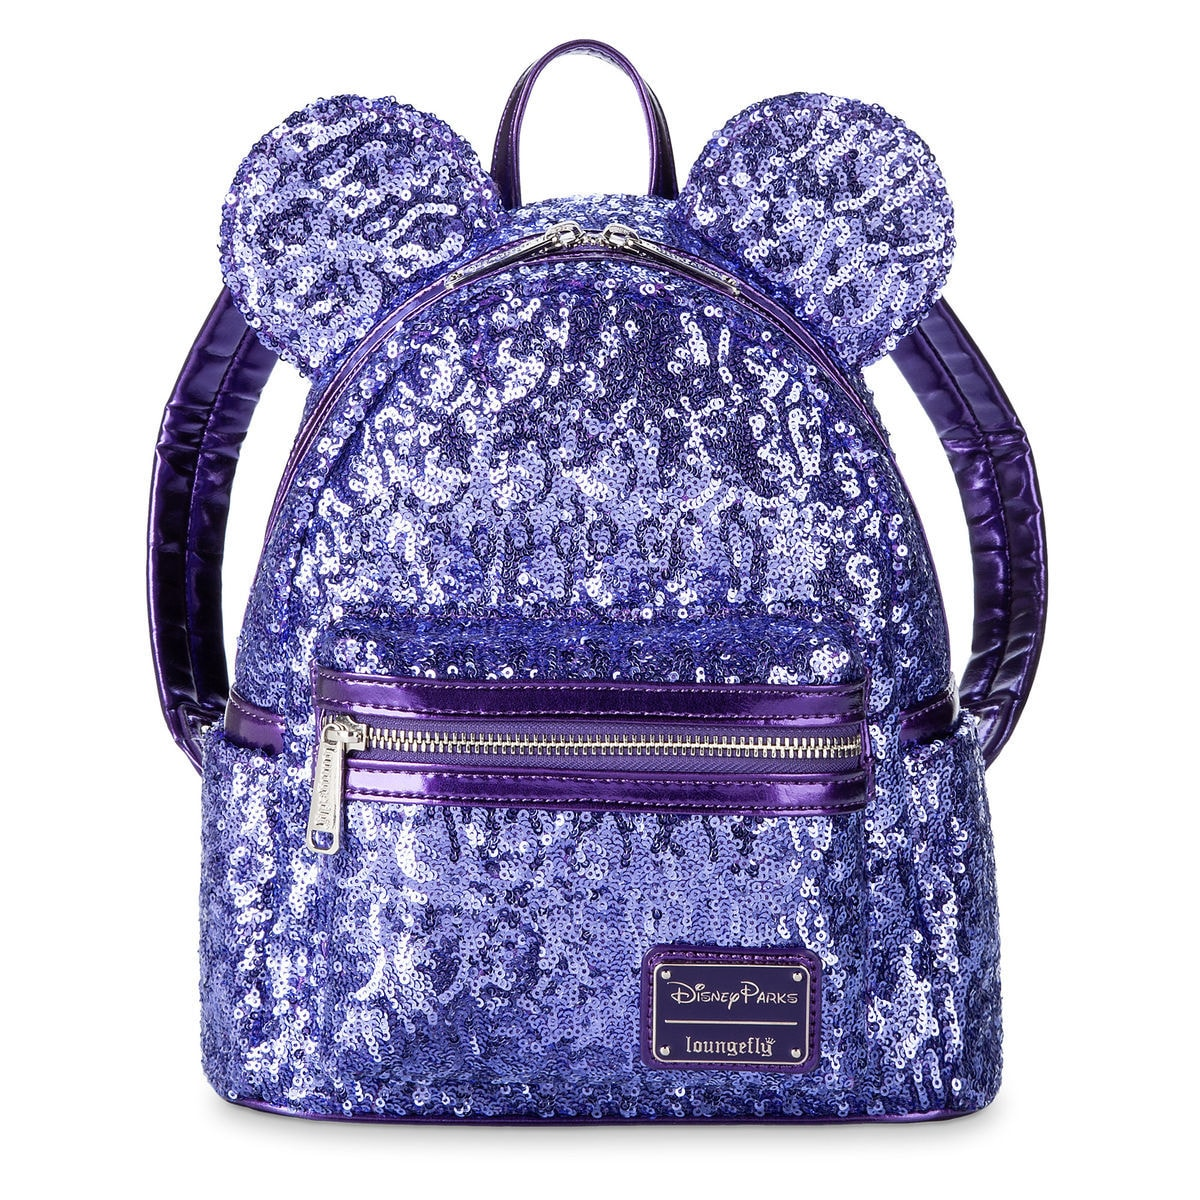 1e46188ce94e Product Image of Minnie Mouse Potion Purple Sequined Mini Backpack by  Loungefly   1